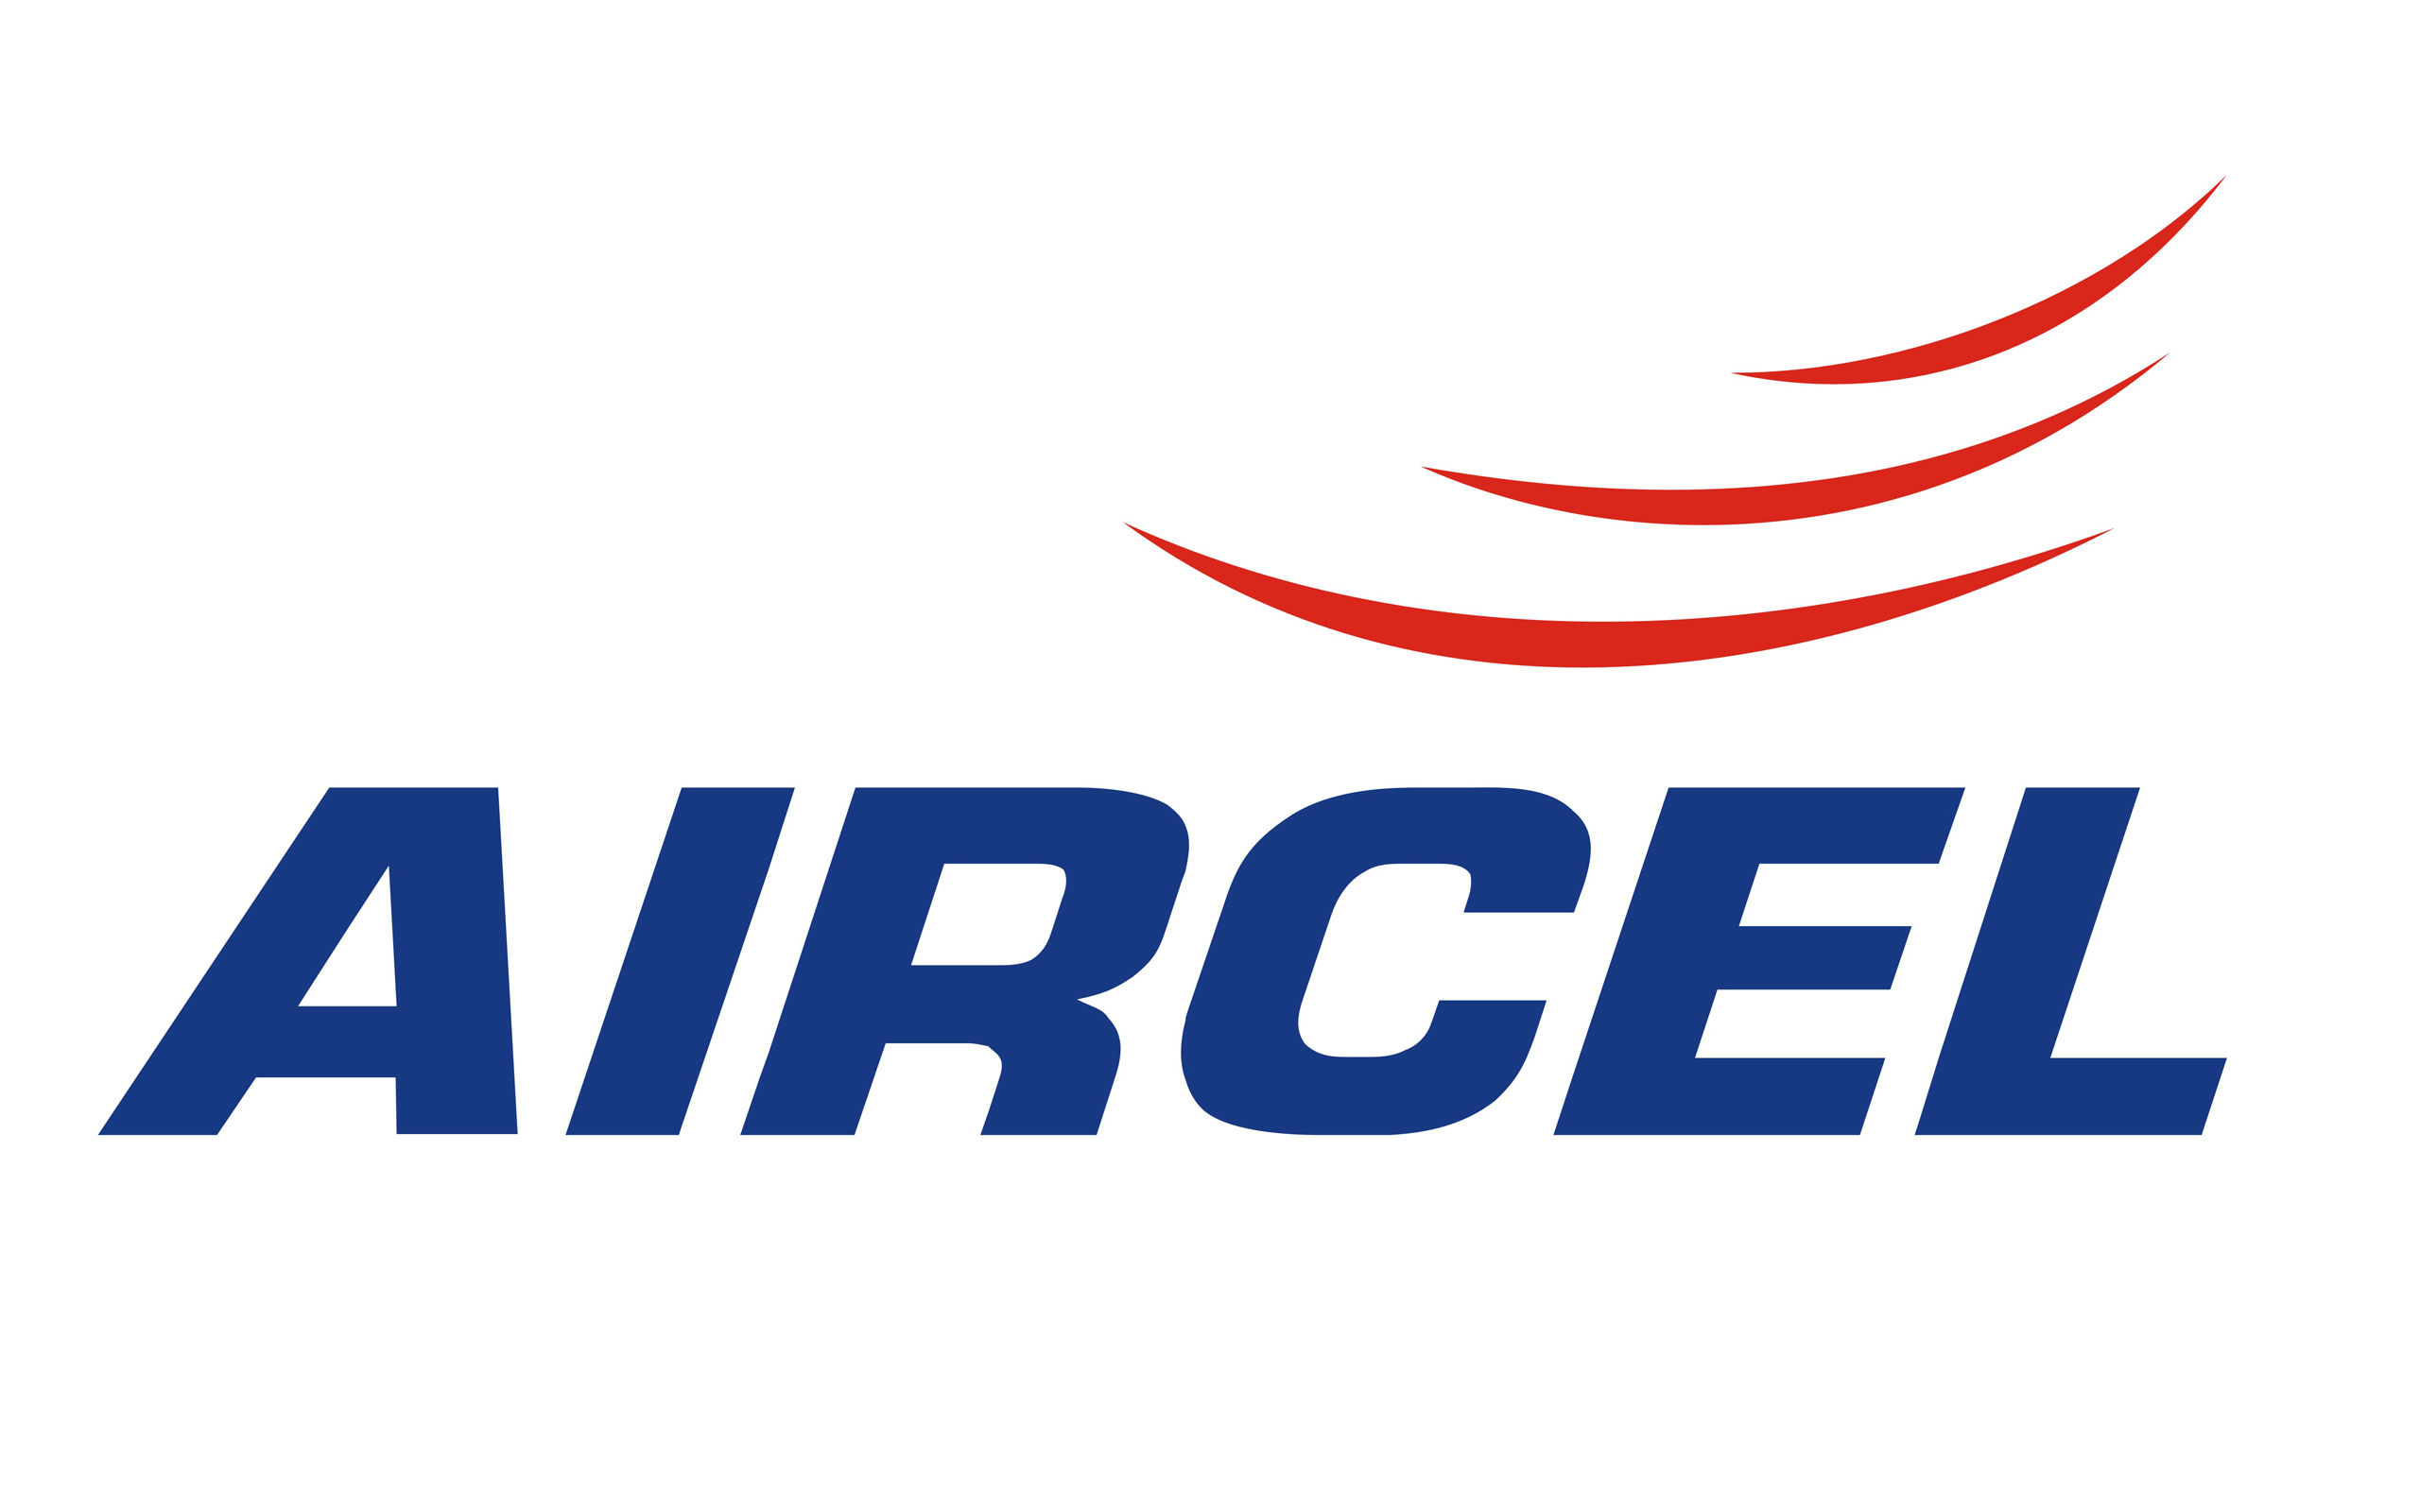 How to find balance in Aircel with USSD code?